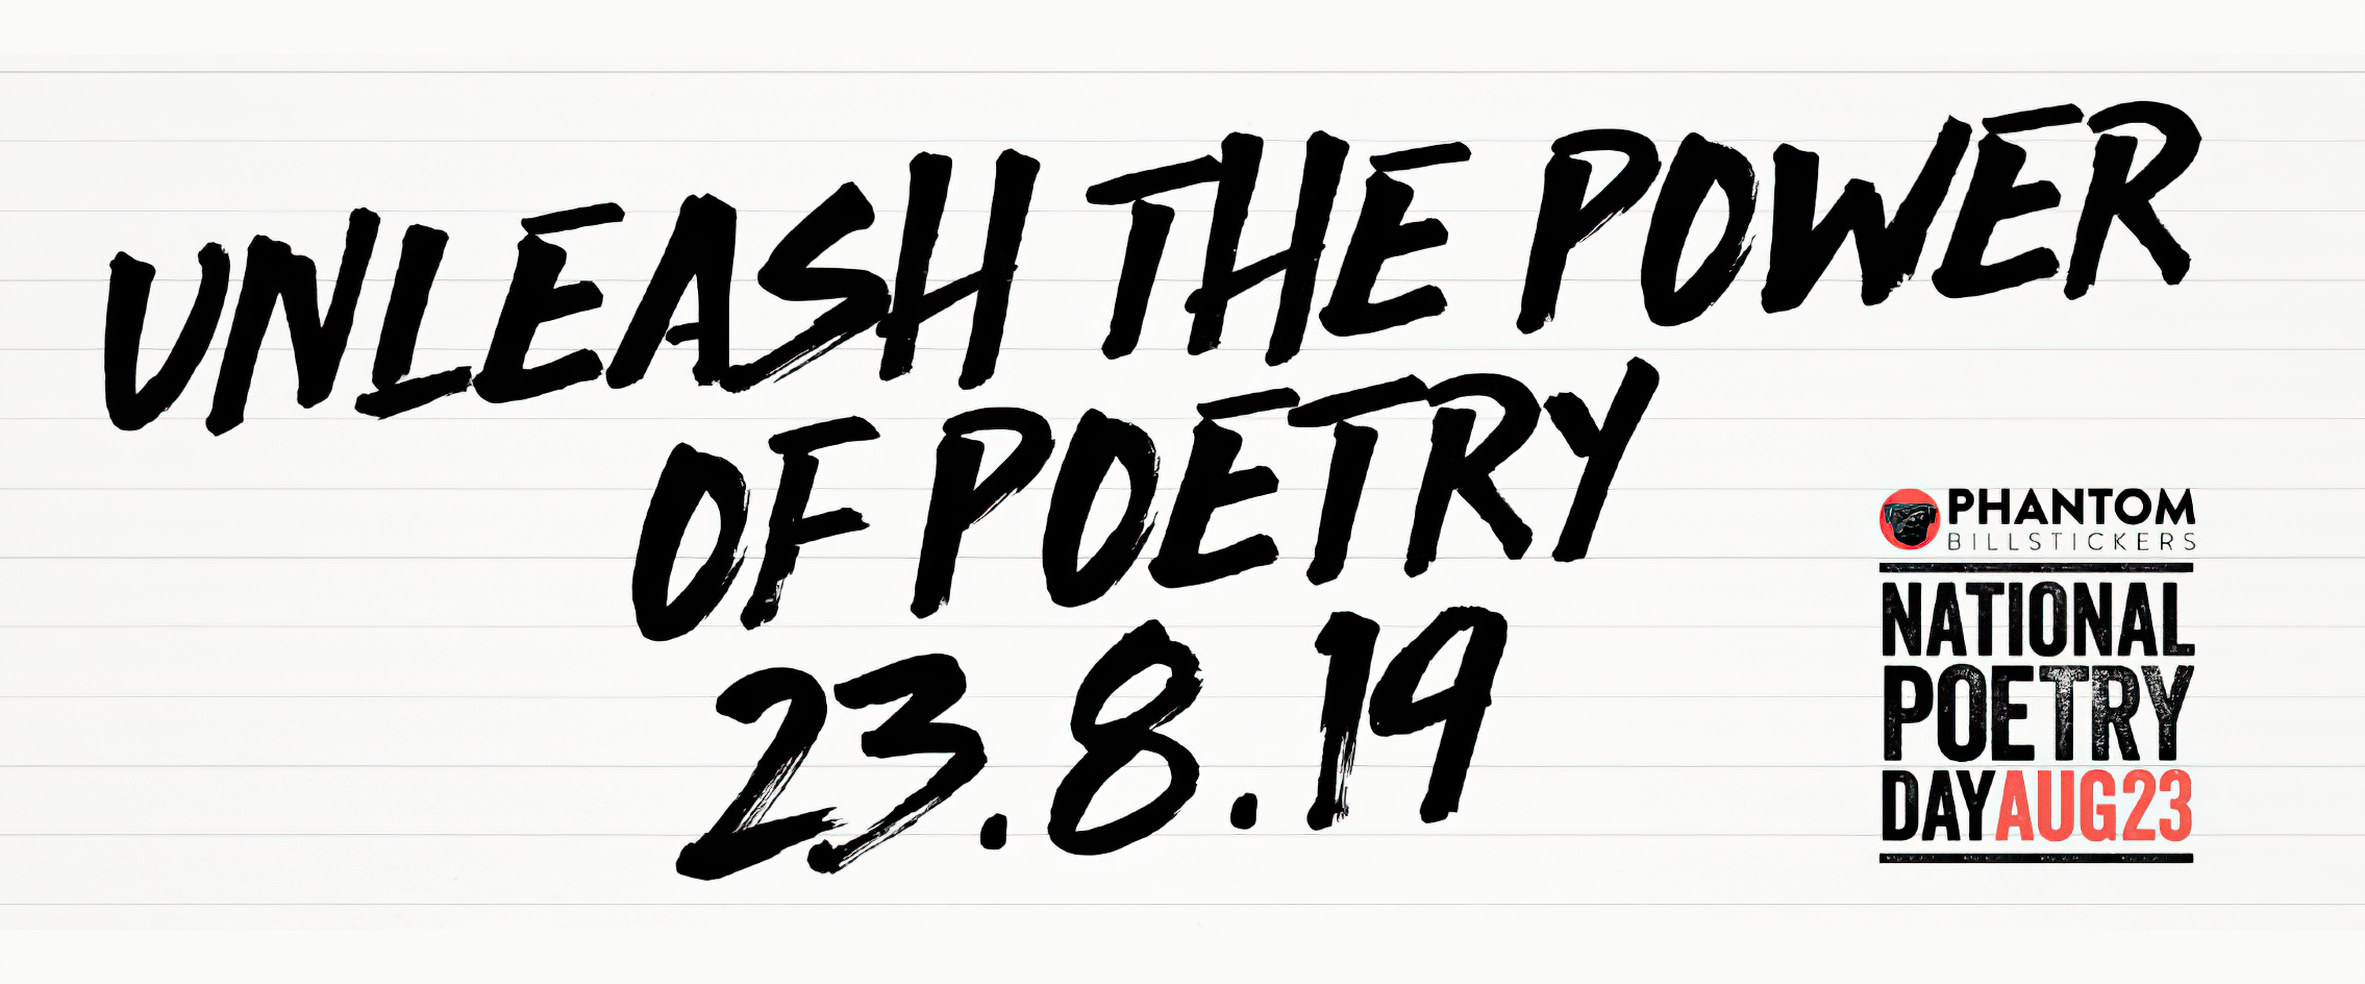 unleash-the-power-of-poetry